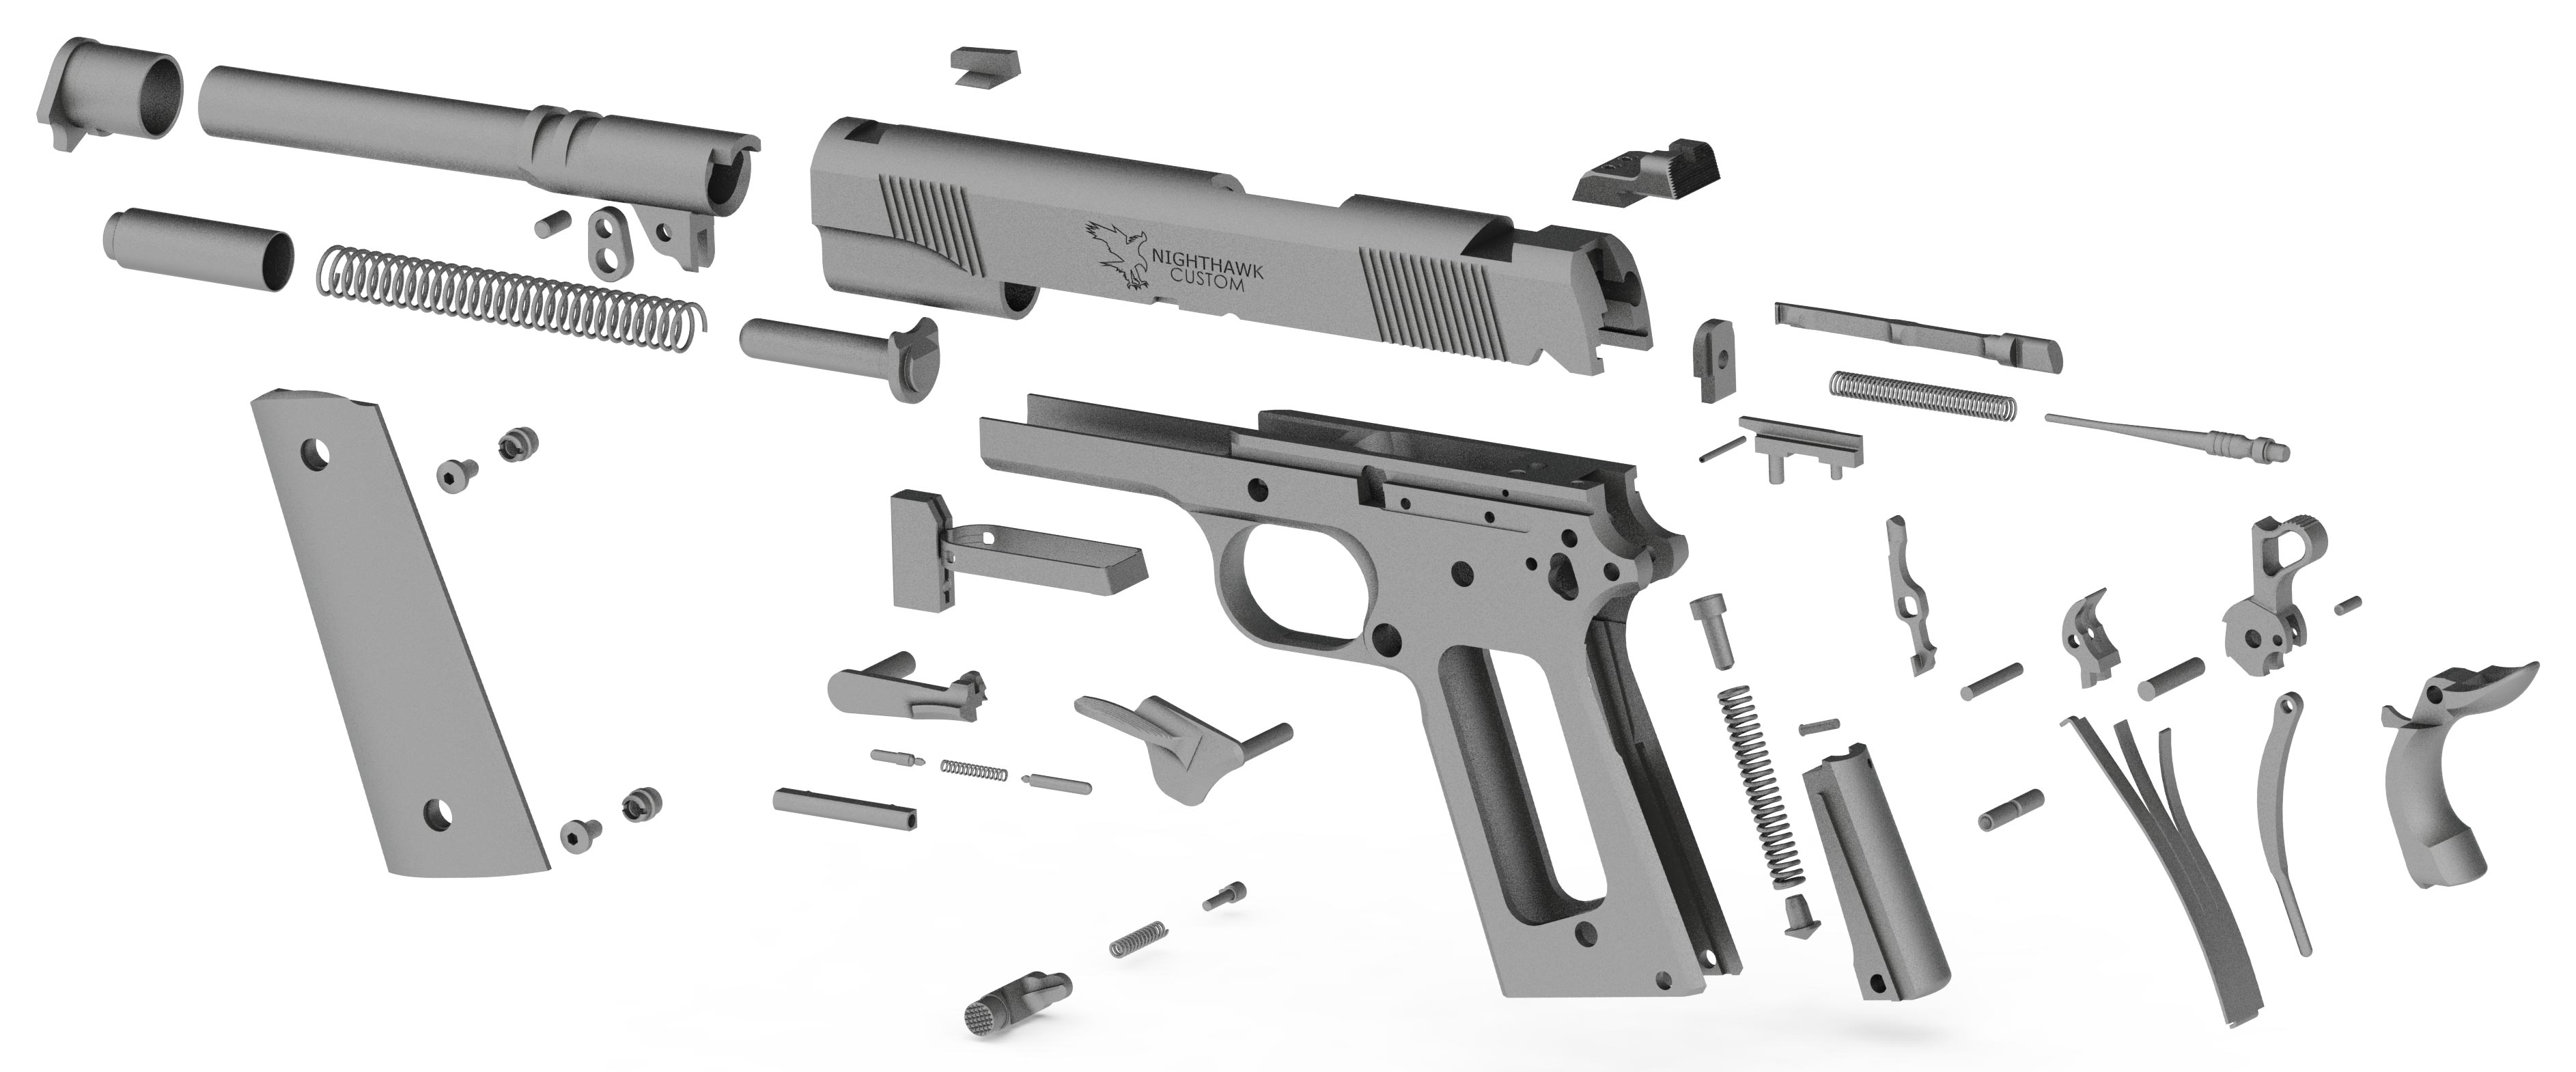 Nighthawk Custom 1911 Exploded View